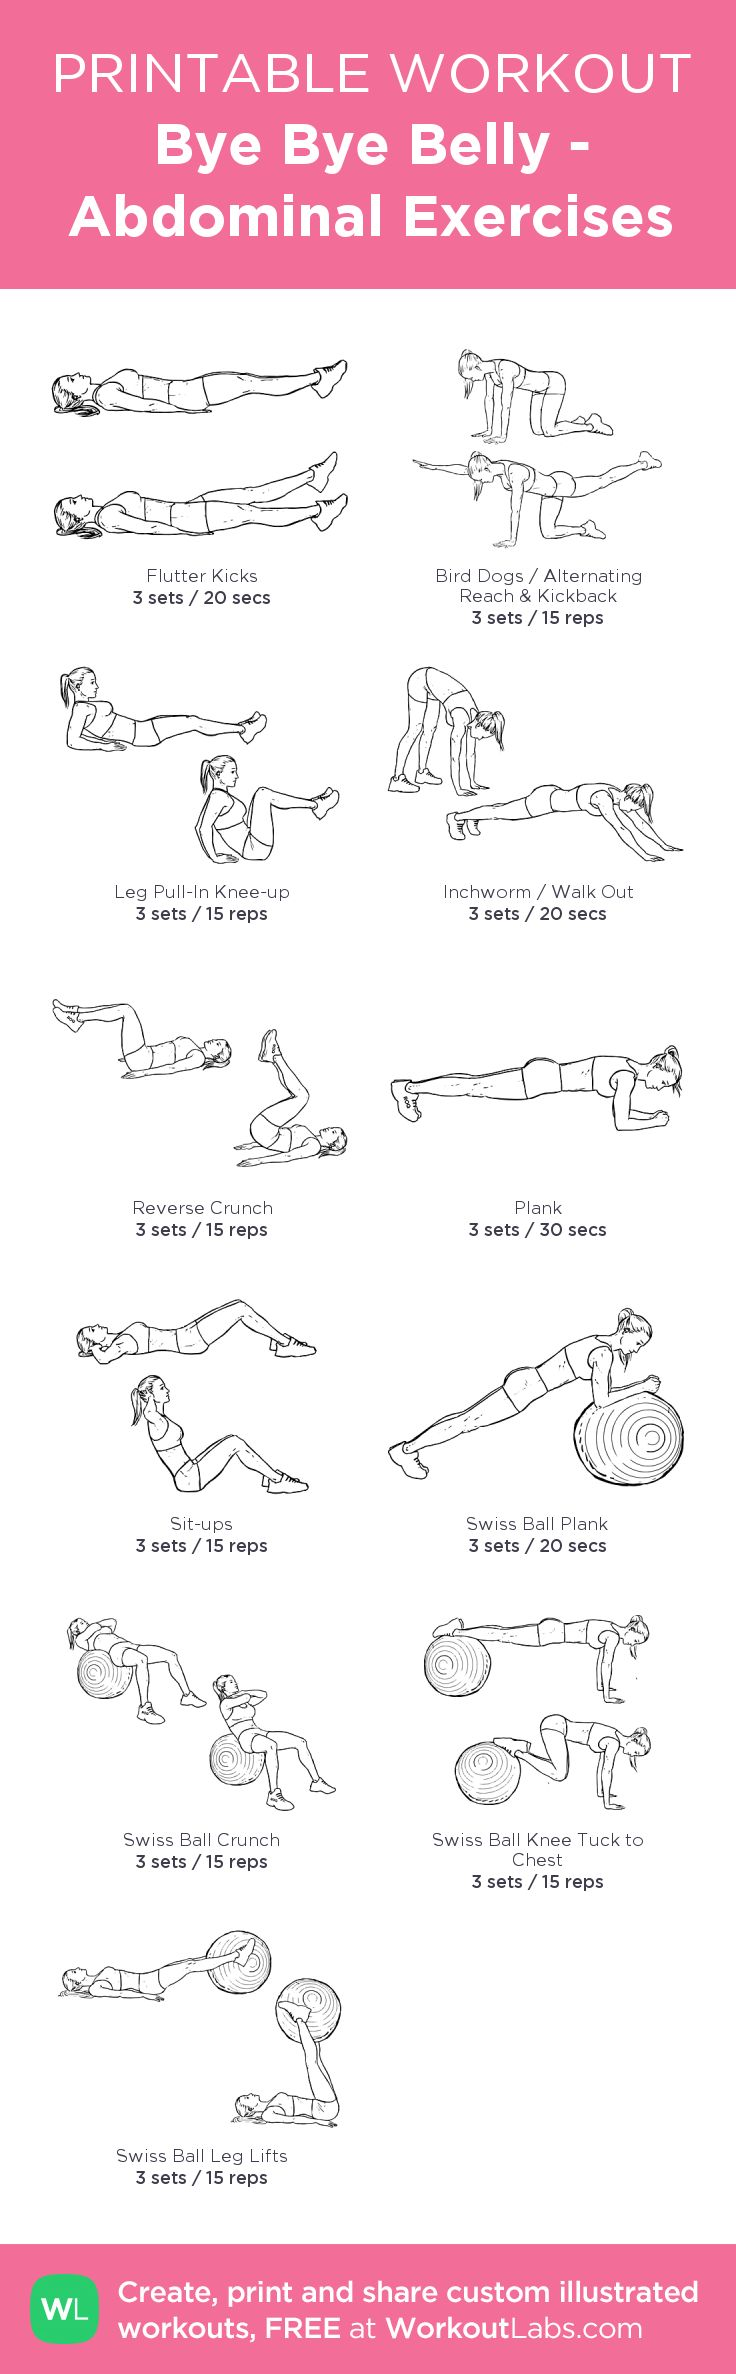 Bye Bye Belly - Abdominal Exercises: my visual workout created at WorkoutLabs.com • Click through to customize and download as a FREE PDF! #customworkout